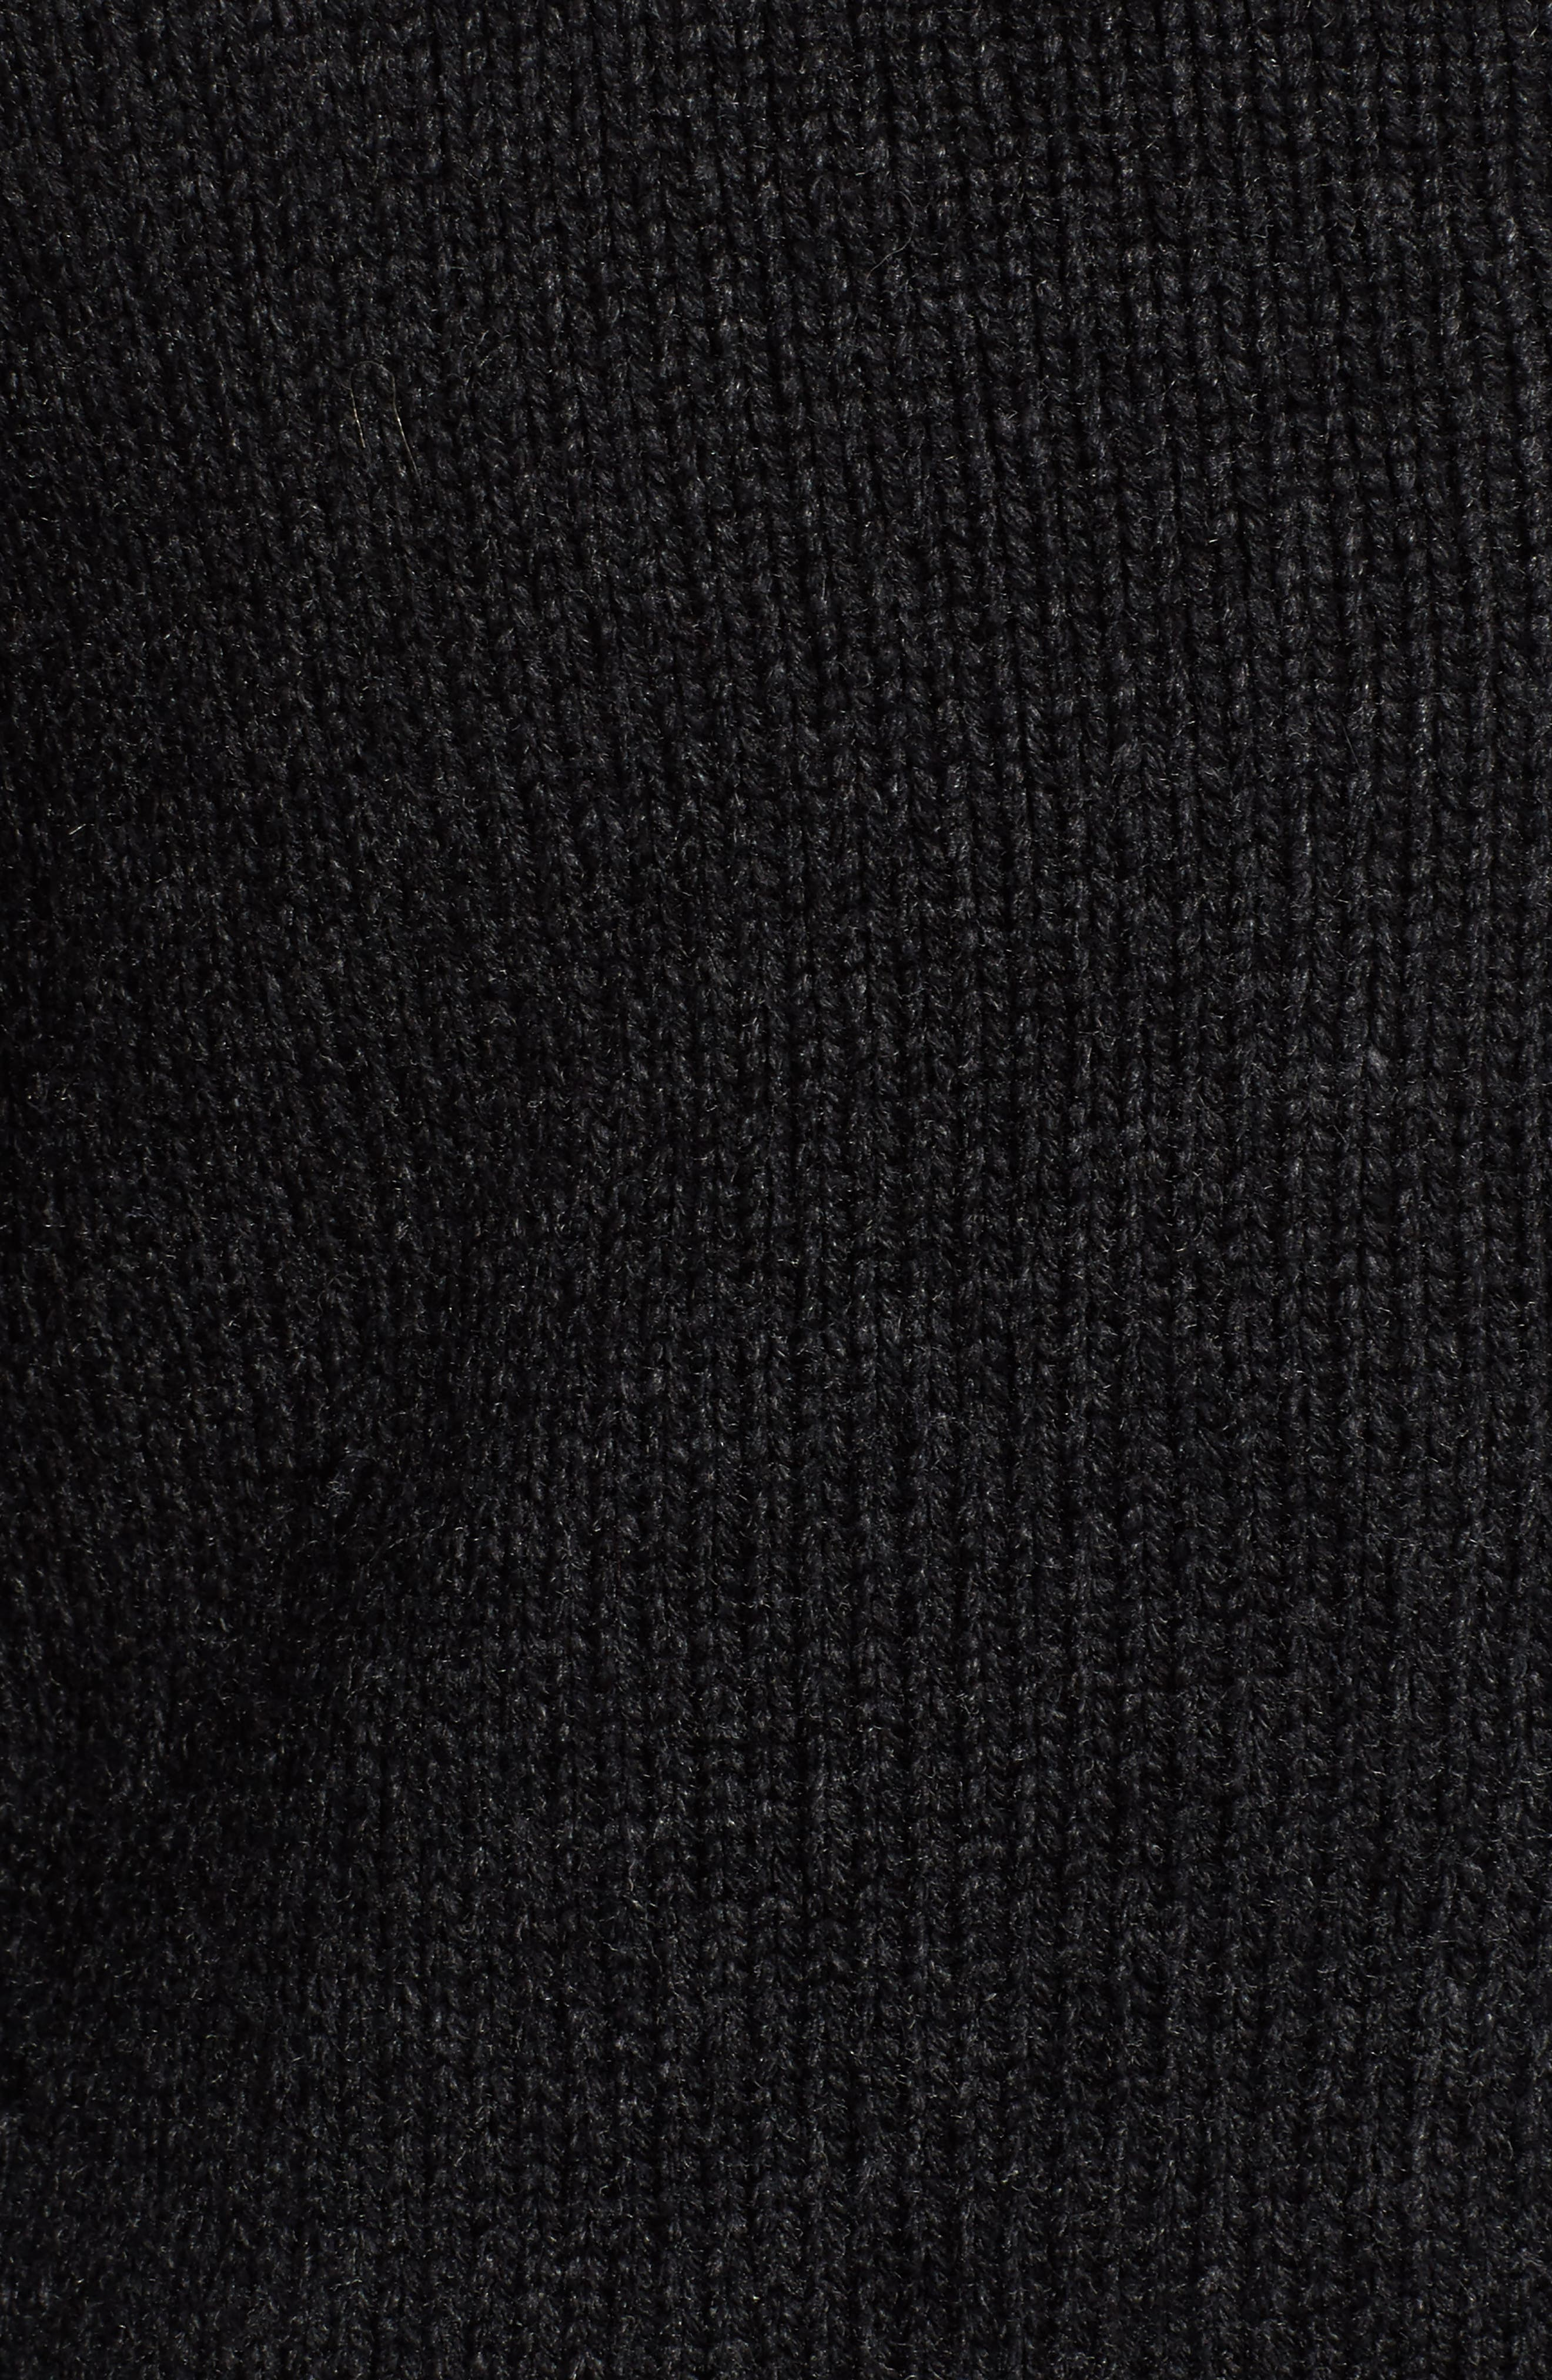 Lined Wool Zip Sweater,                             Alternate thumbnail 6, color,                             BLACK